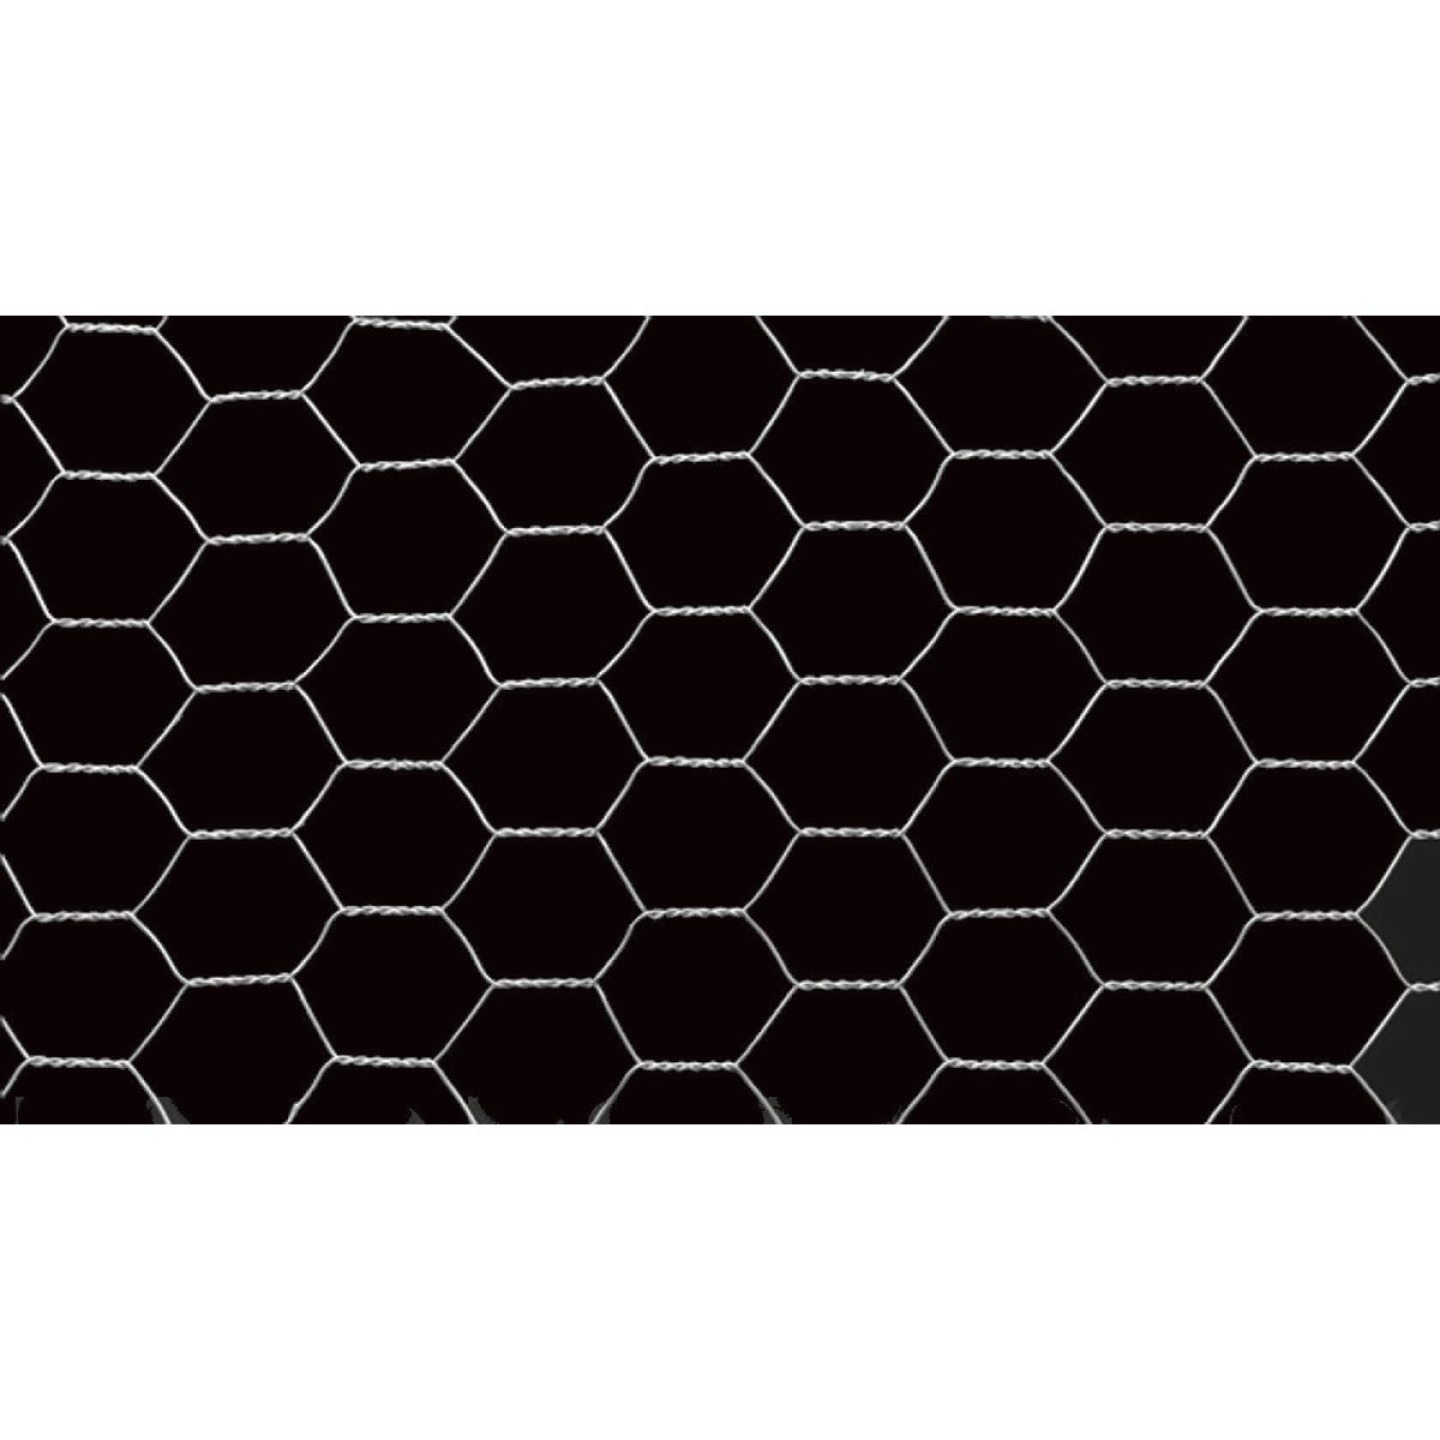 1 In. x 24 In. H. x 10 Ft. L. Hexagonal Wire Poultry Netting Image 4